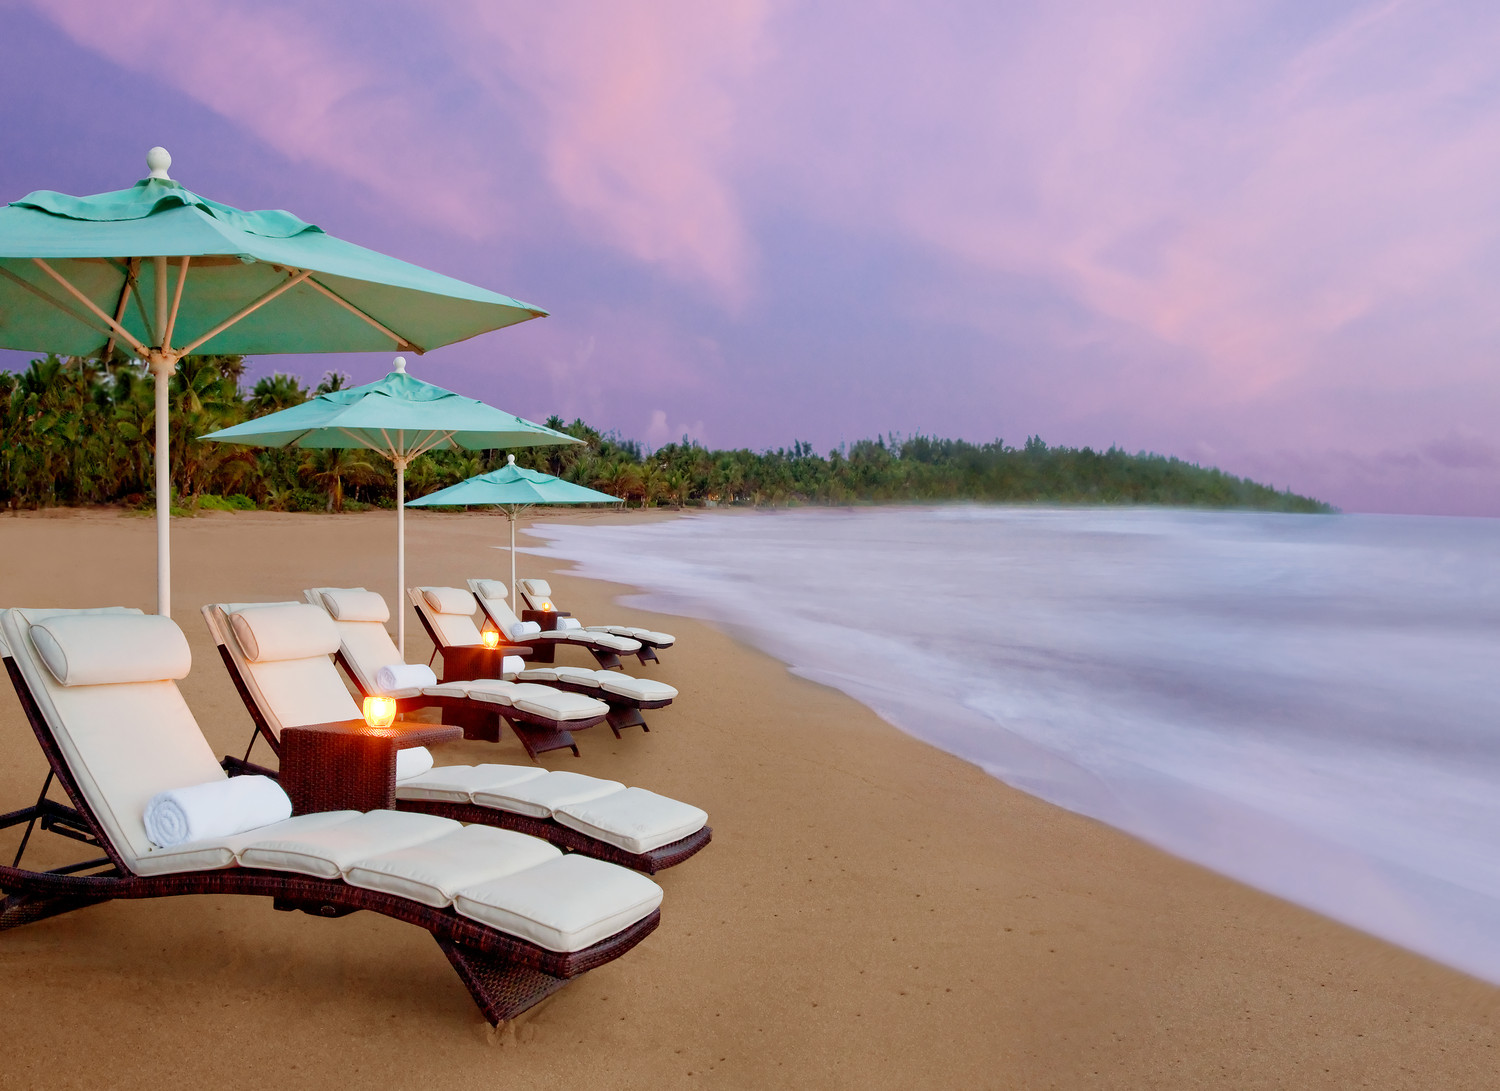 St. Regis Bahia Beach Resort at dawn